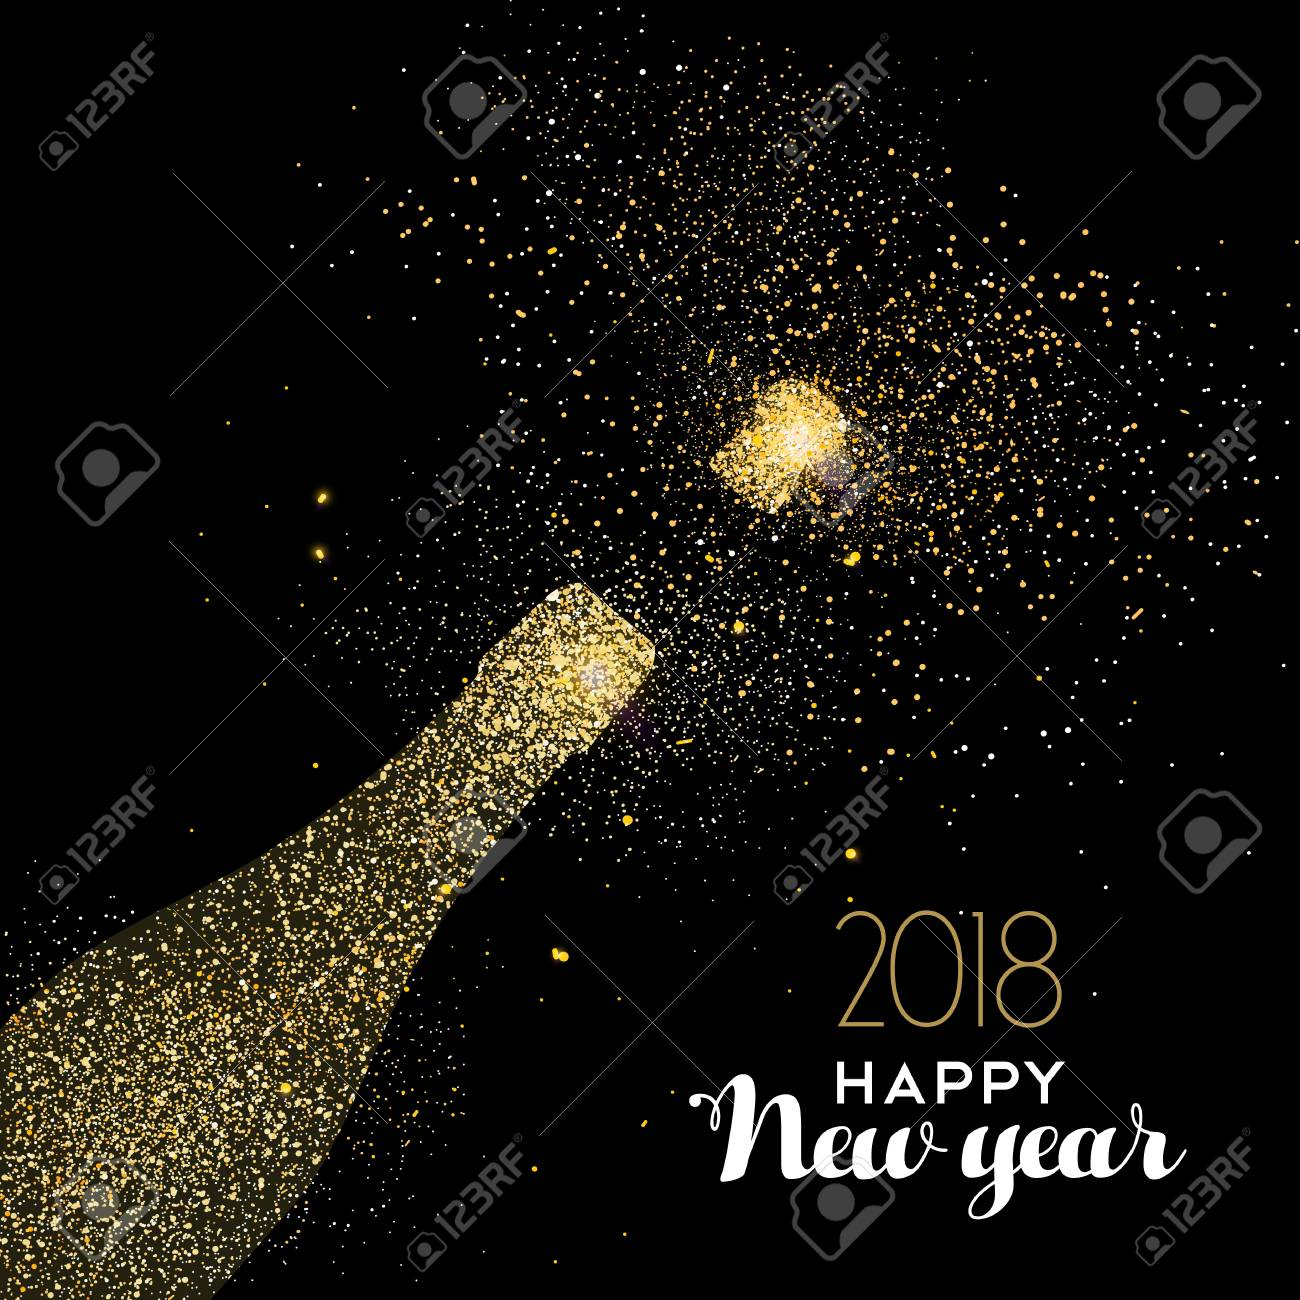 Happy new year 2018 gold champagne bottle celebration made of happy new year 2018 gold champagne bottle celebration made of realistic golden glitter dust ideal stopboris Choice Image